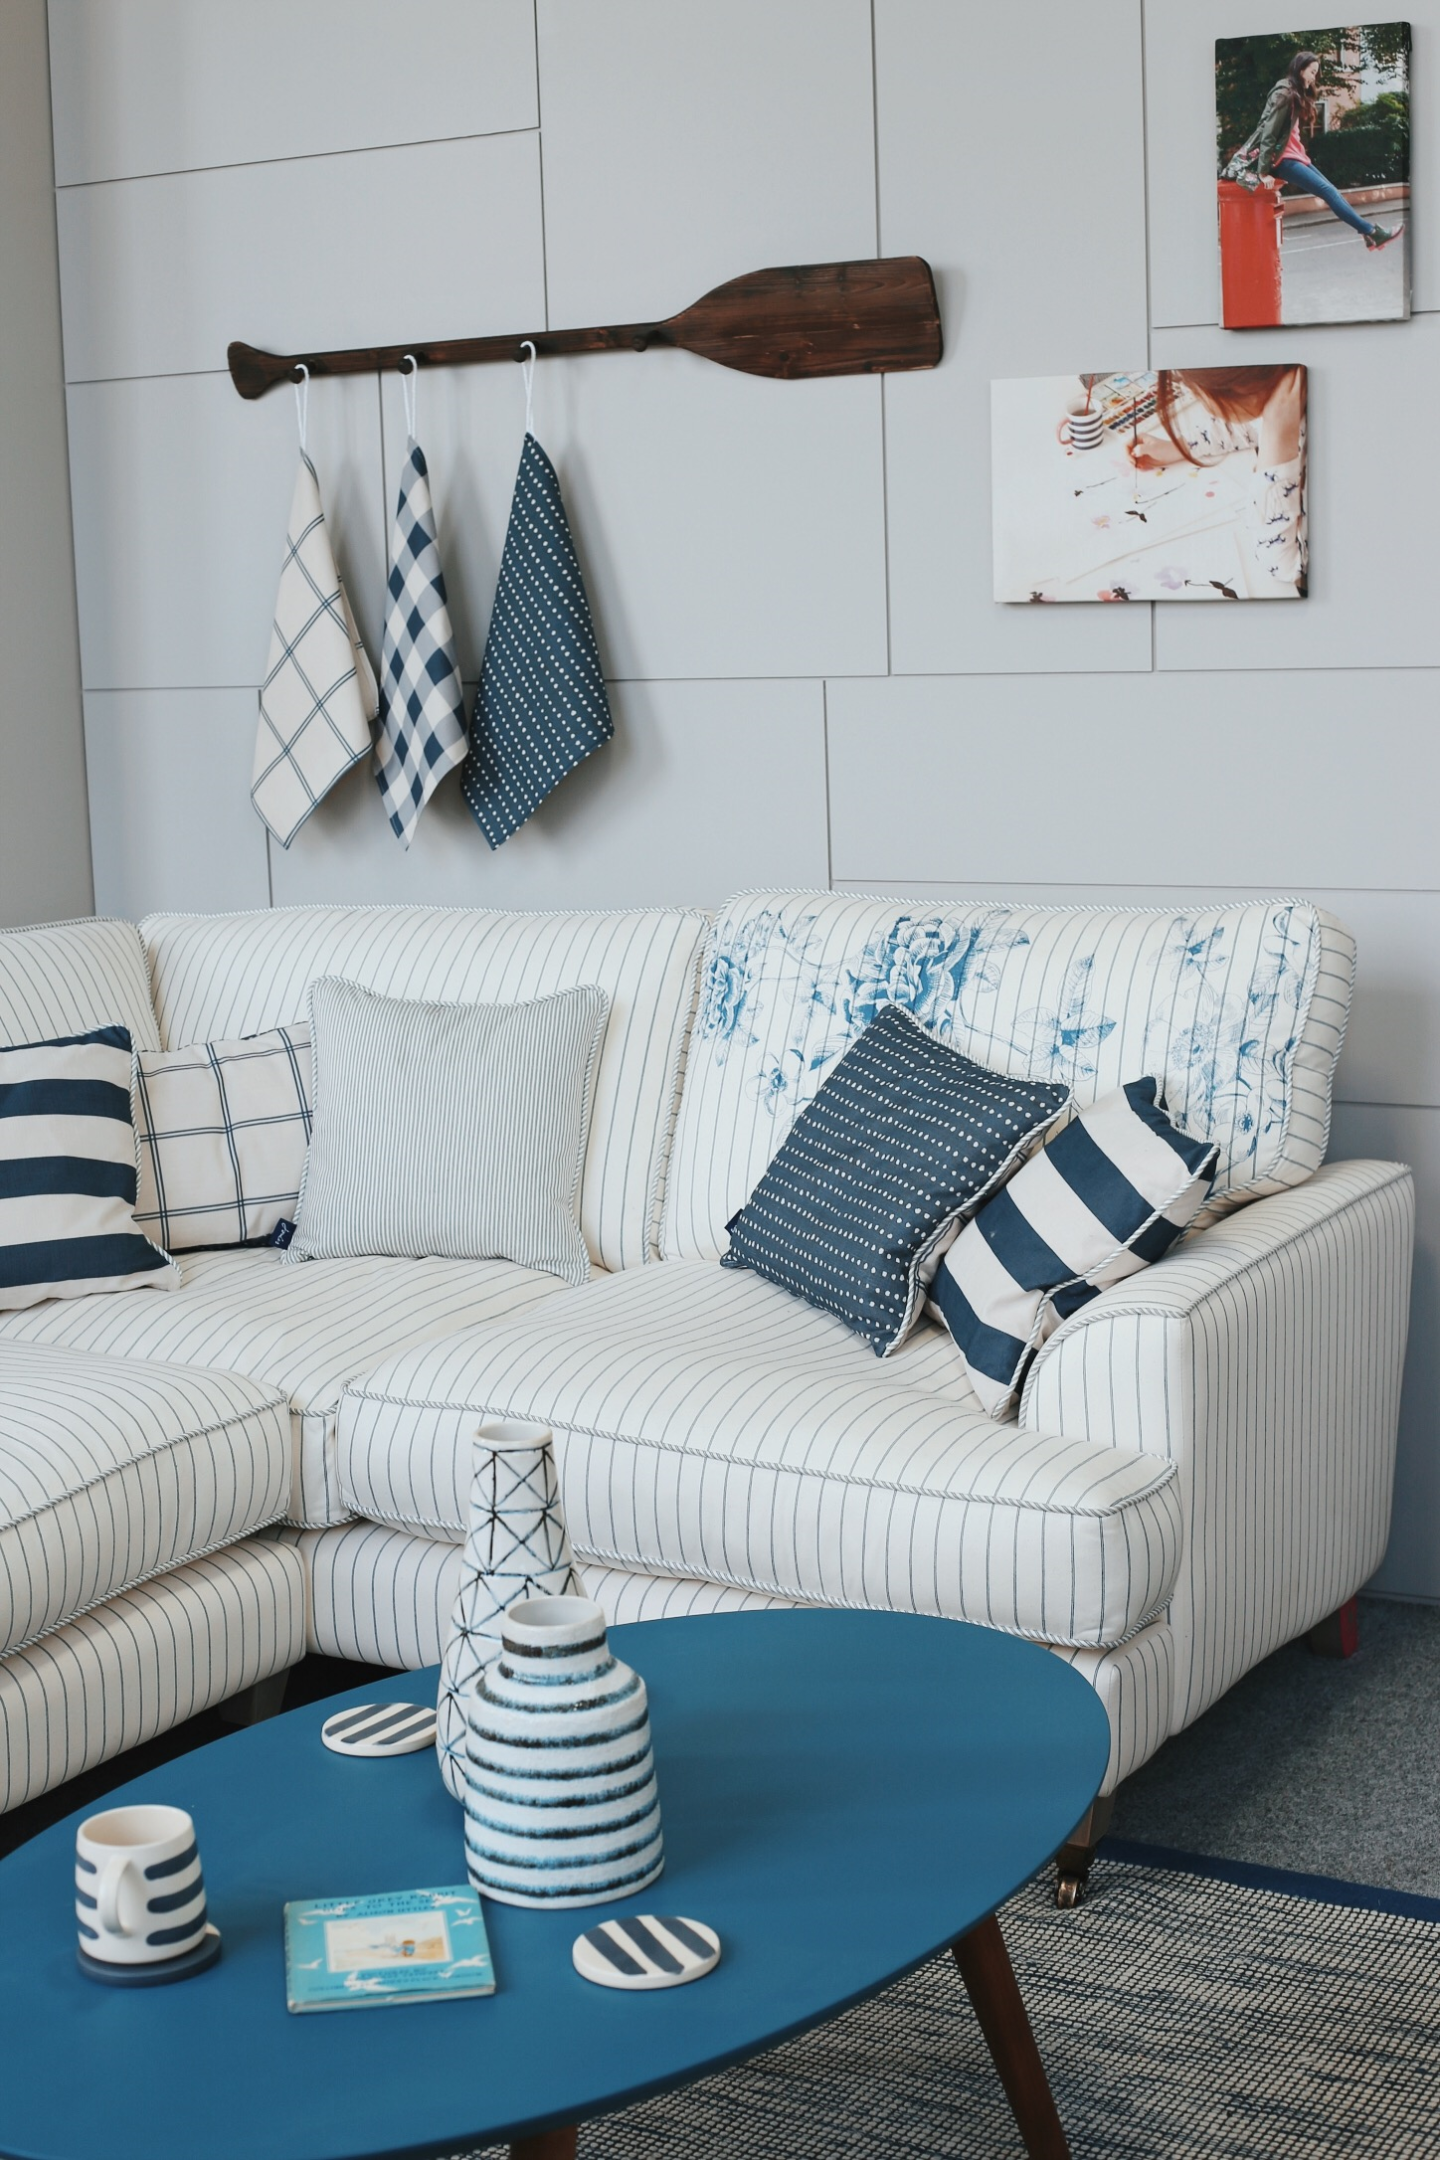 Joules sofa, available exclusively at DFS